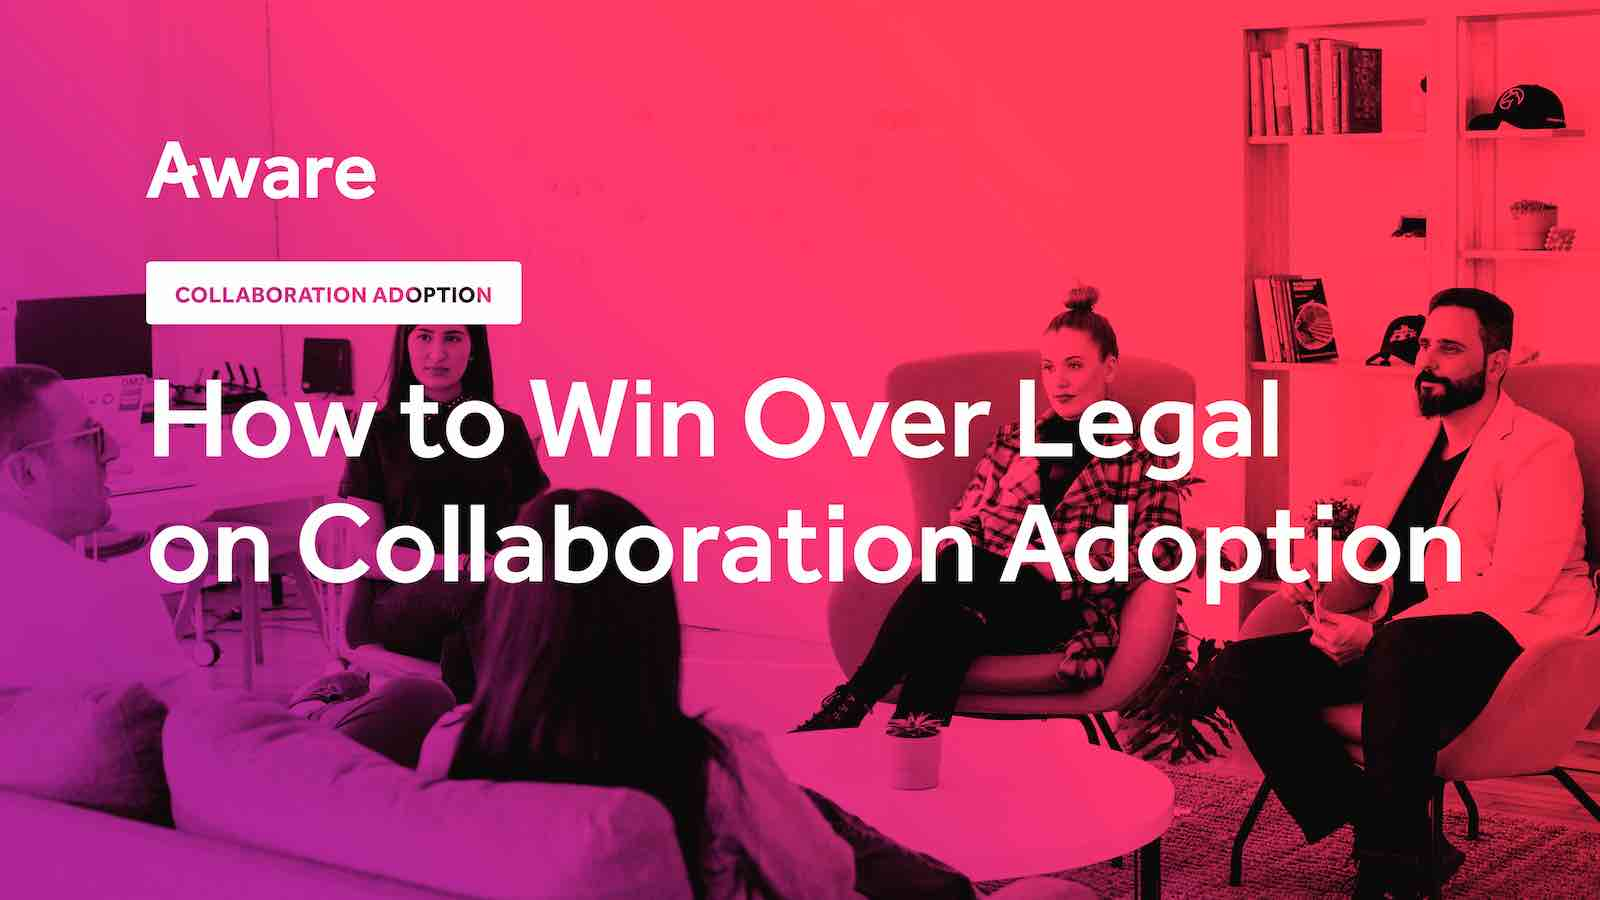 How to Win Over Legal on Collaboration Adoption